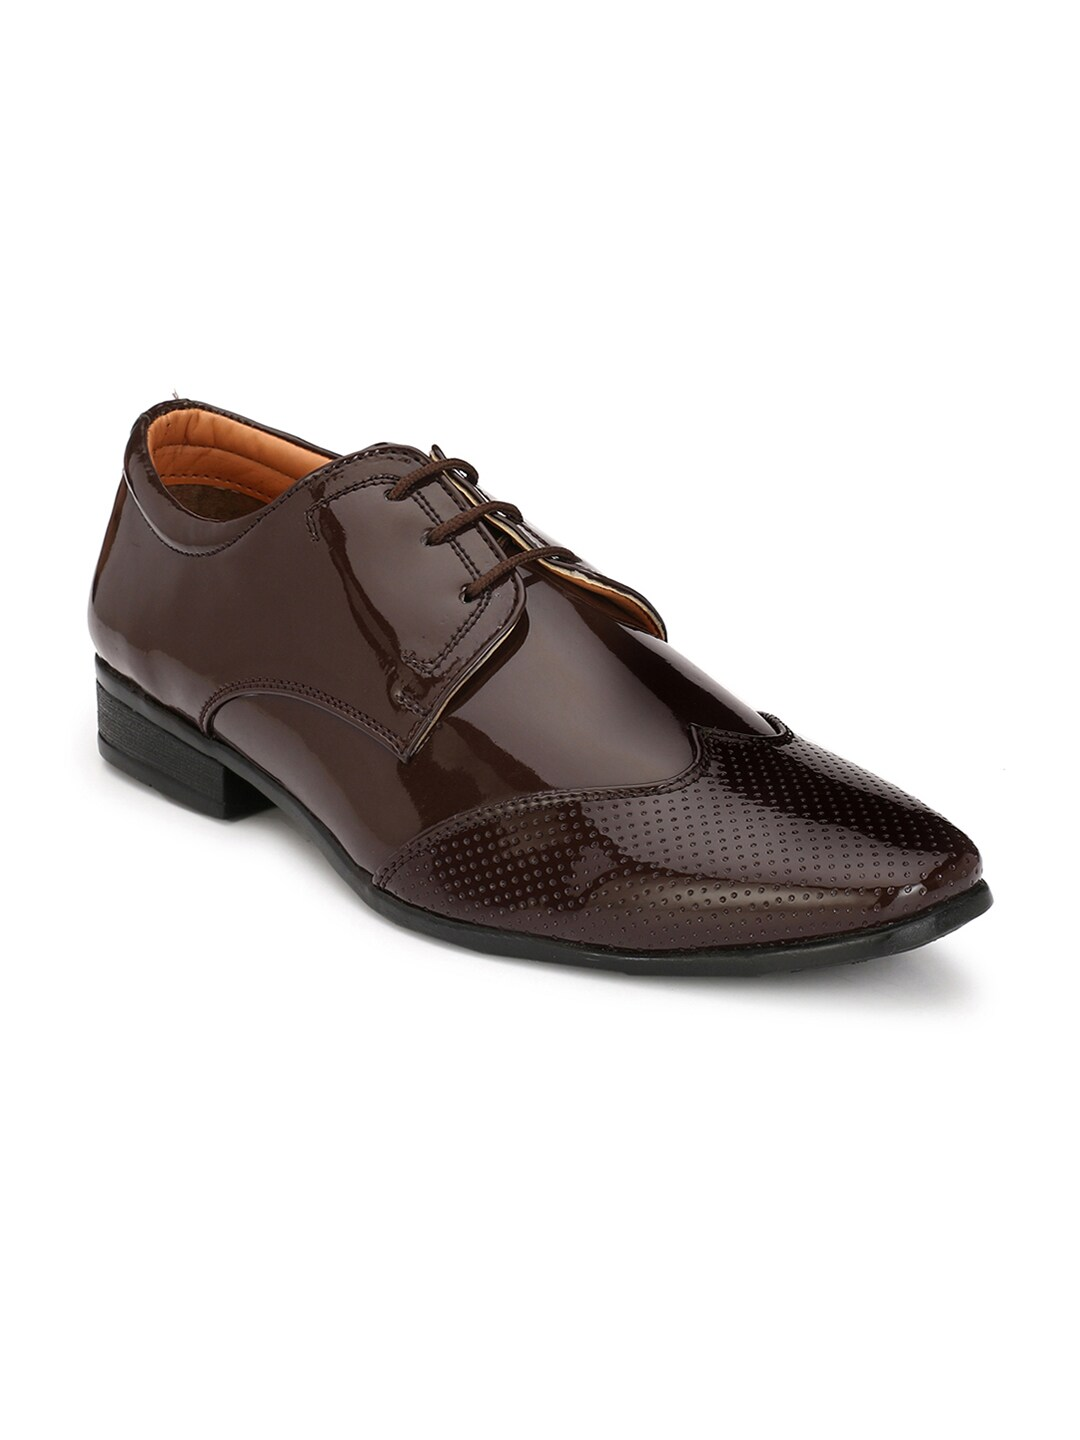 95bb6fd3321 Formal Shoes Online - Buy Formal Shoes for Men   Women in India